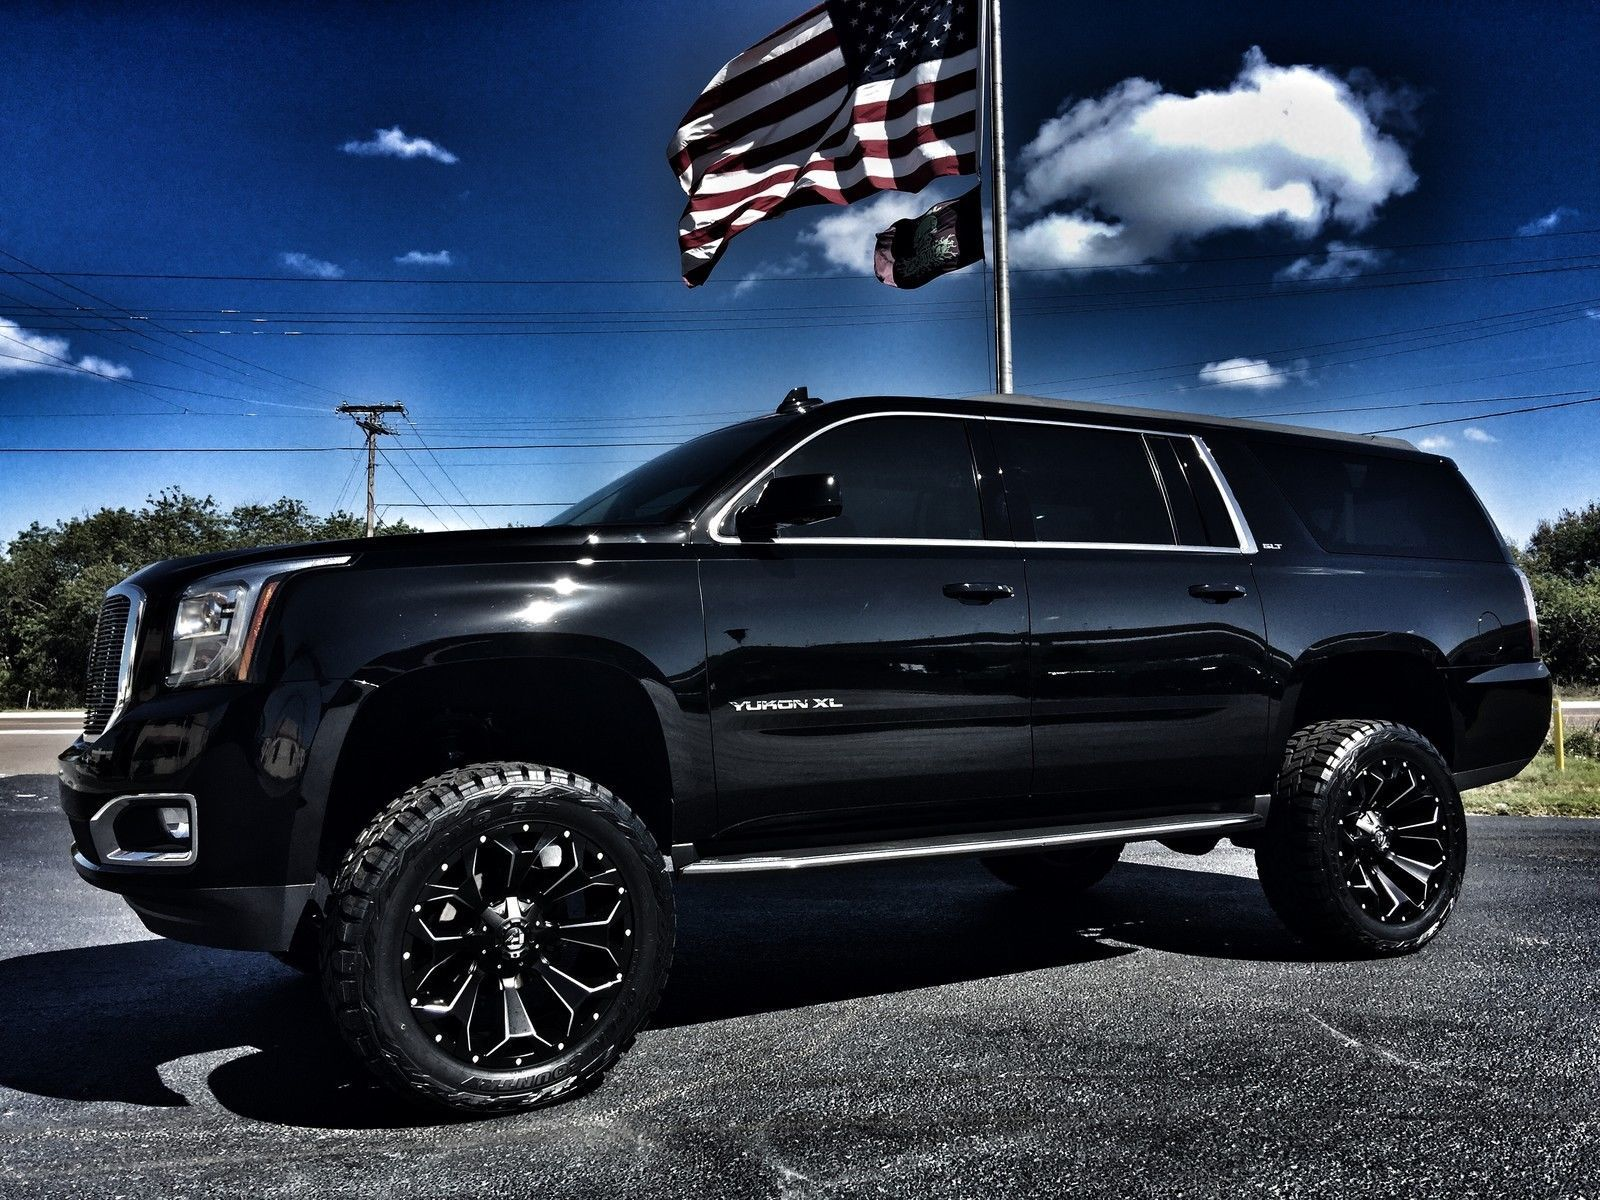 2016 Gmc Yukon Black Black Custom Lifted Slt 22 Fuel Ebay Black Tahoe Gmc Yukon Diesel Trucks